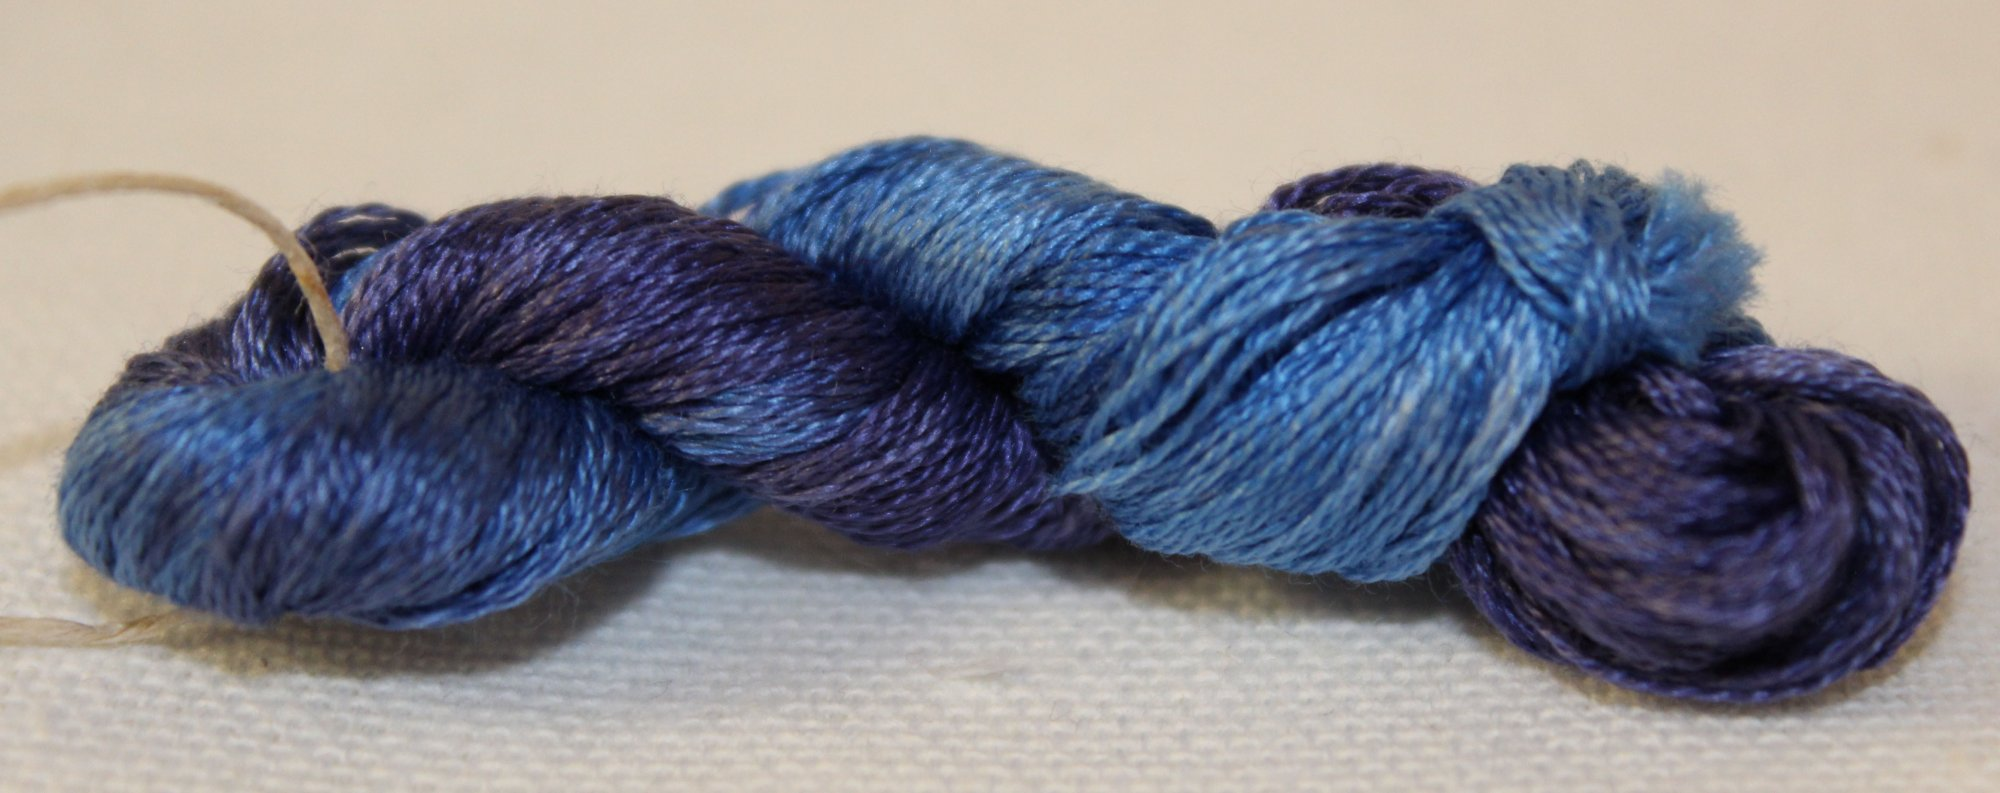 Blackberry- Hand-Dyed Embroidery Floss